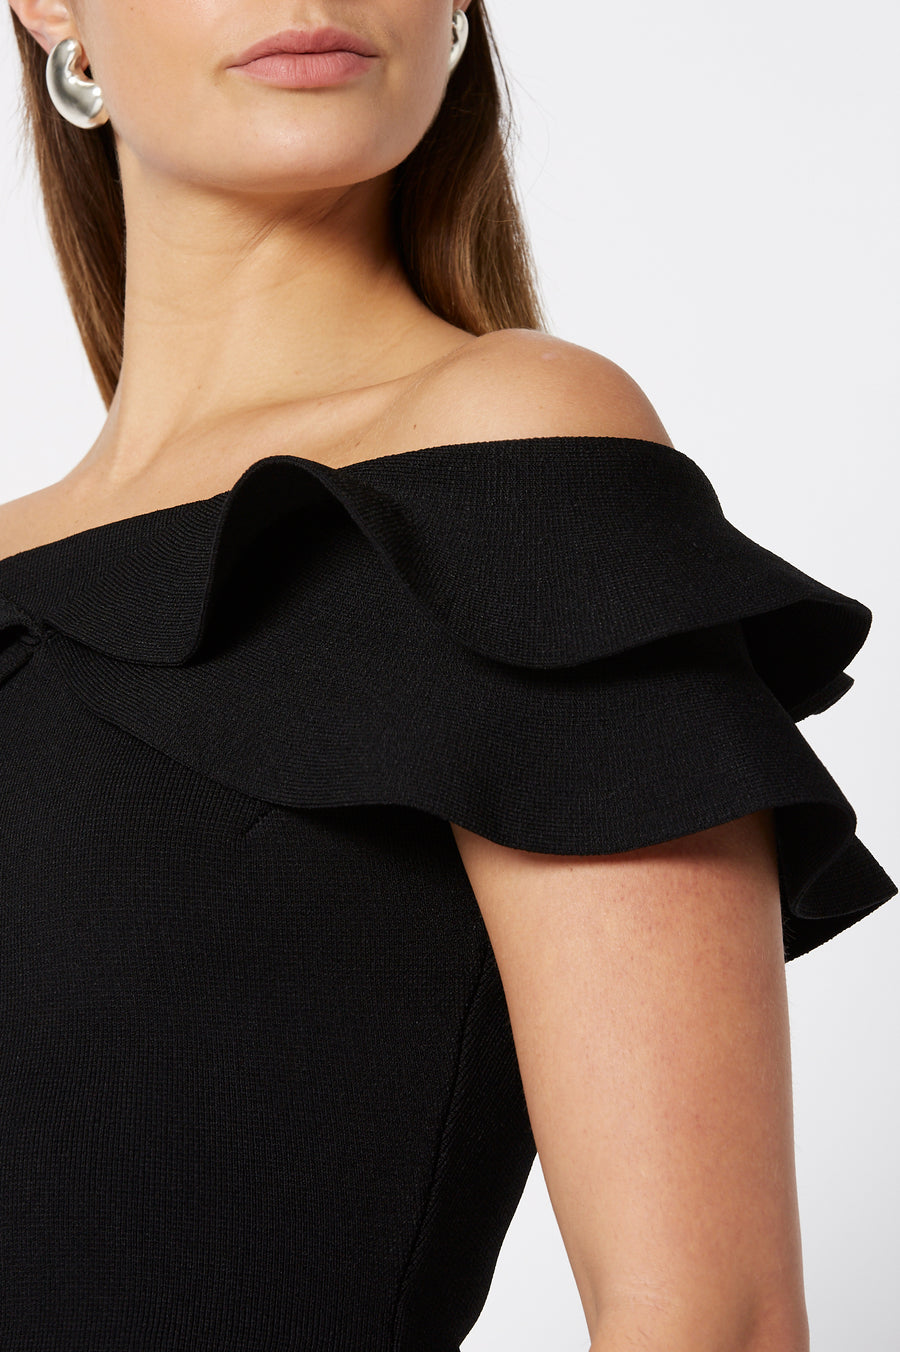 The Crepe Knit Cold Shoulder Ruffle Top is designed for a slim fit, color black